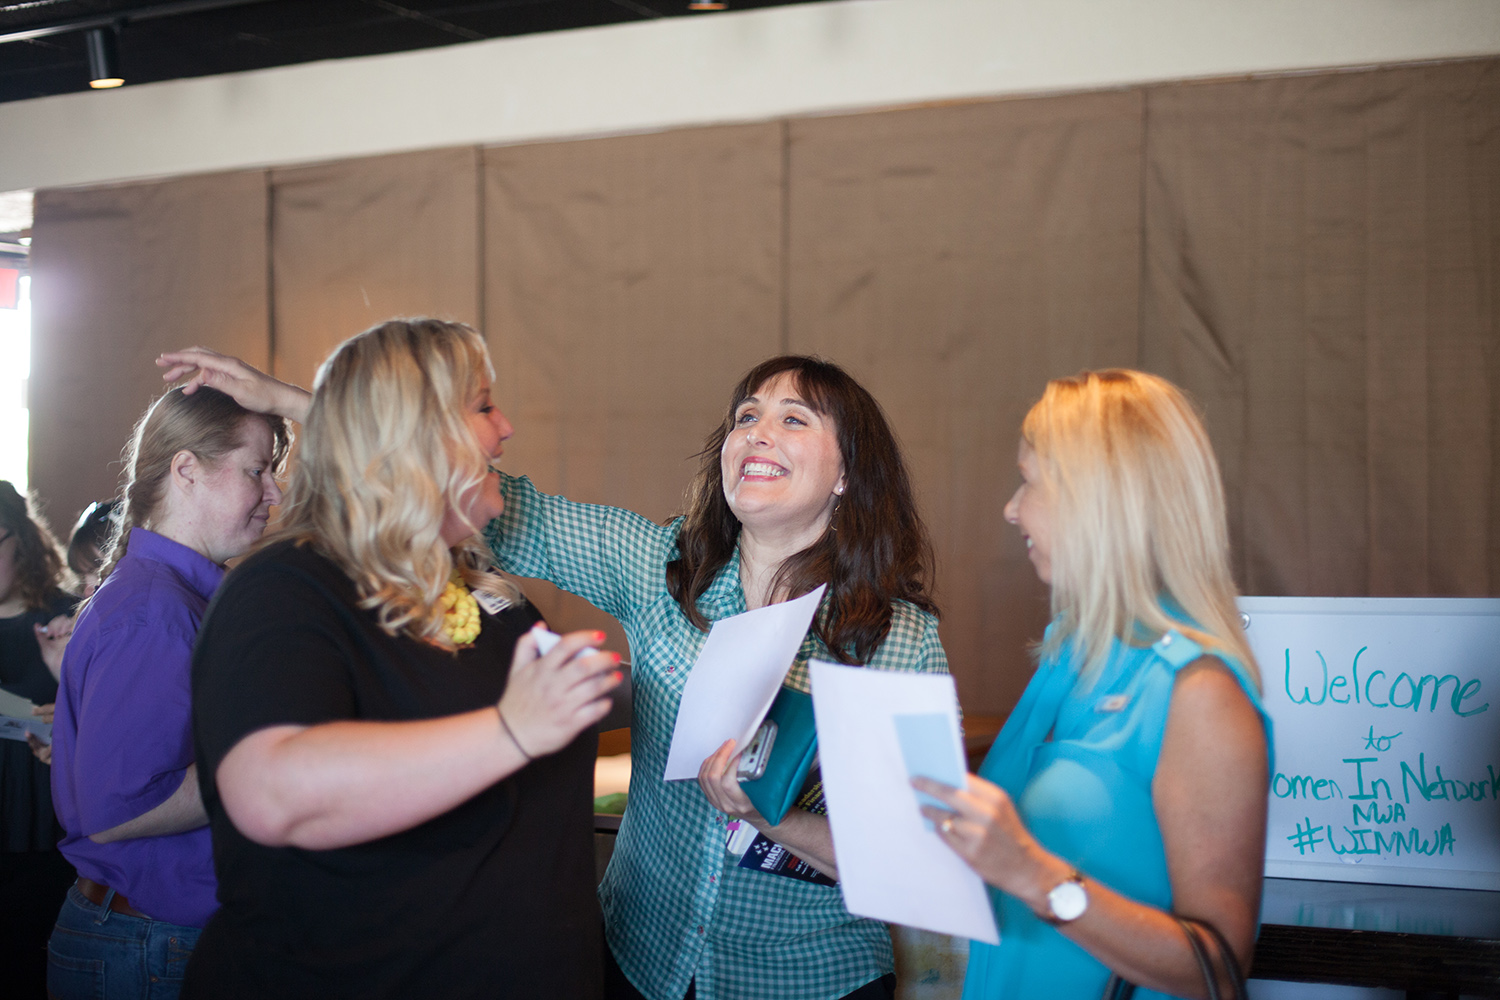 Women In Networking NWA-June 15th Lunch-Let's Connect!